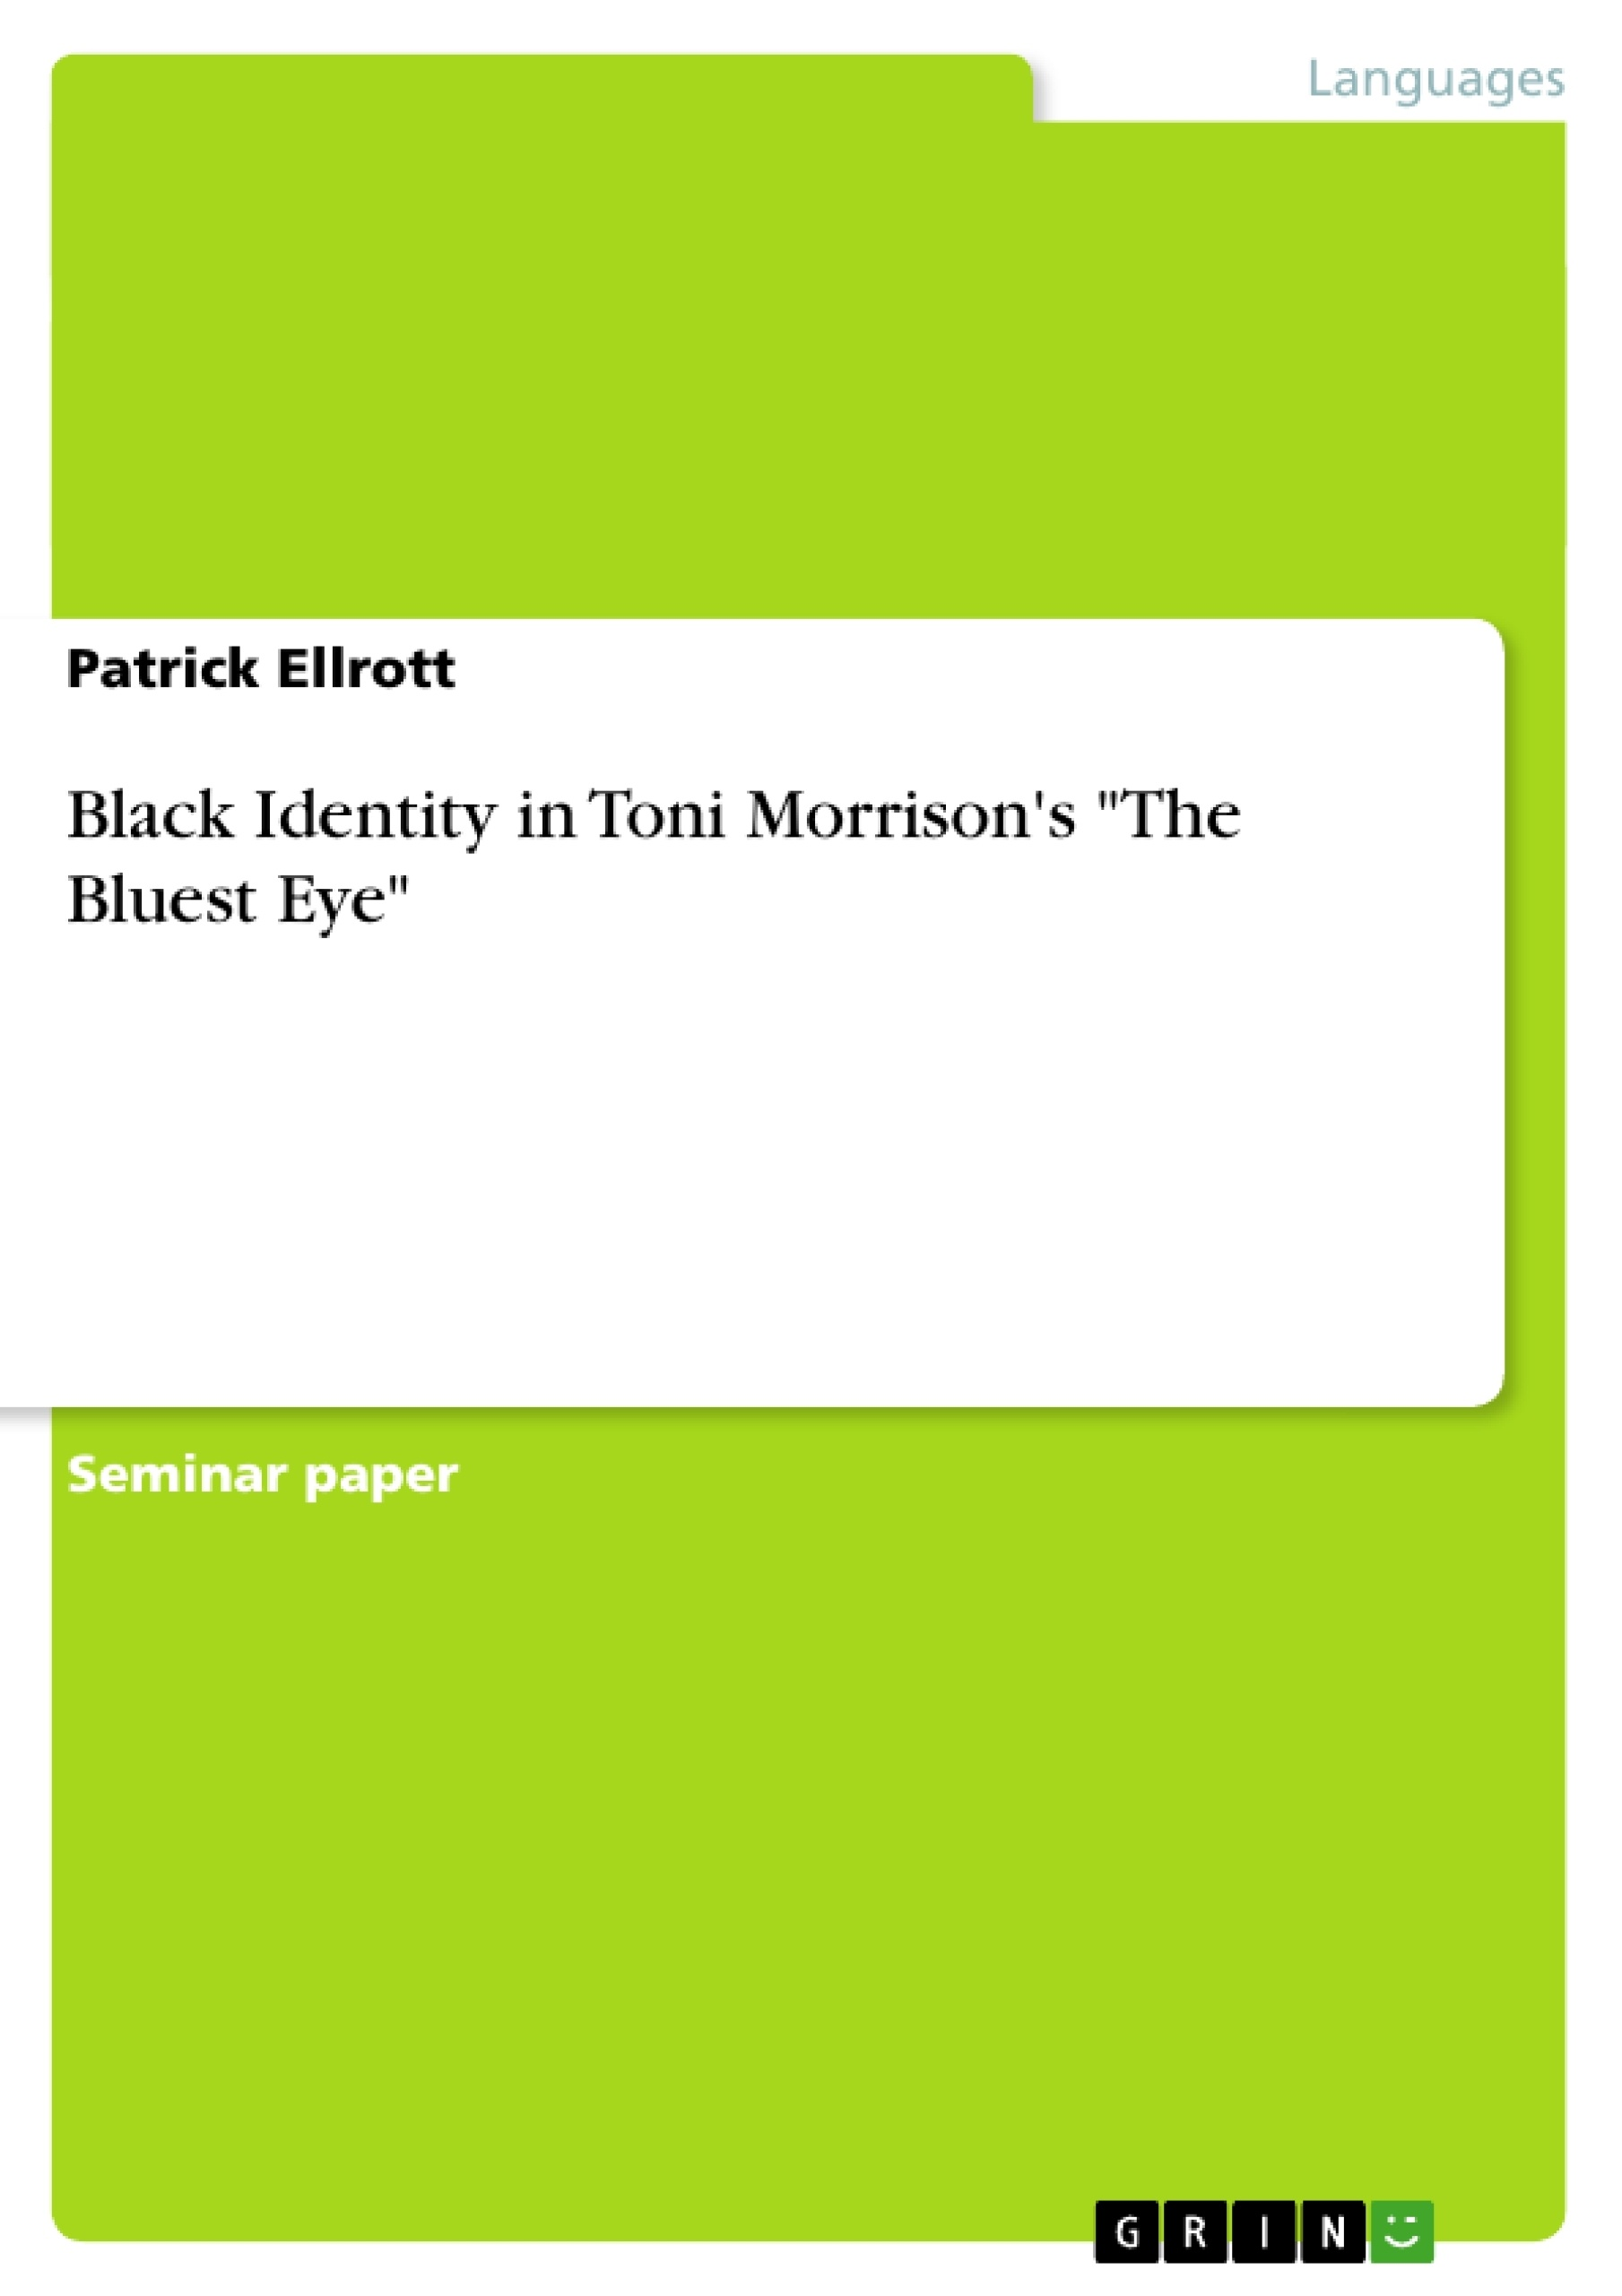 the bluest eye essays on beauty